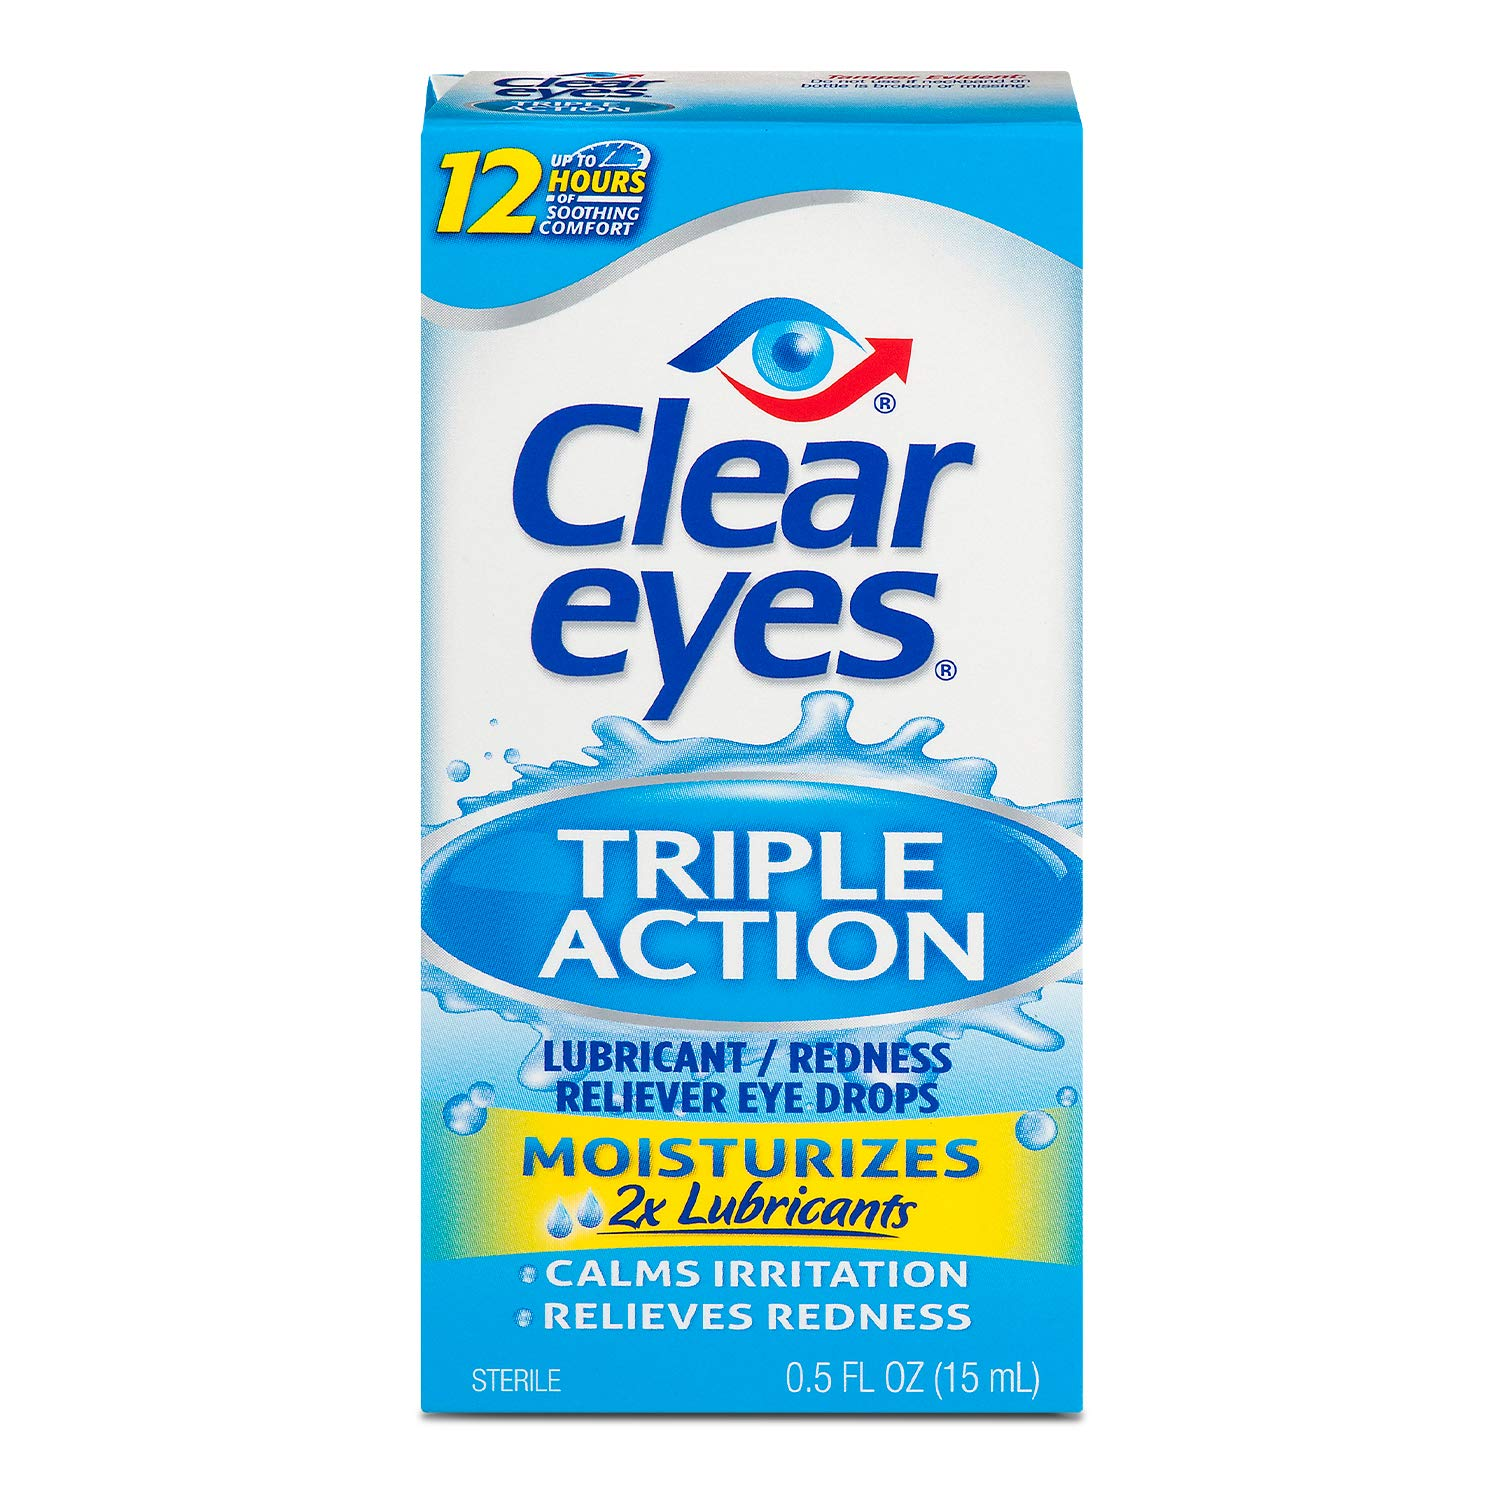 Clear Eyes | Triple Action Lubricant/Redness Relief Eye Drops | 0.5 FL OZ